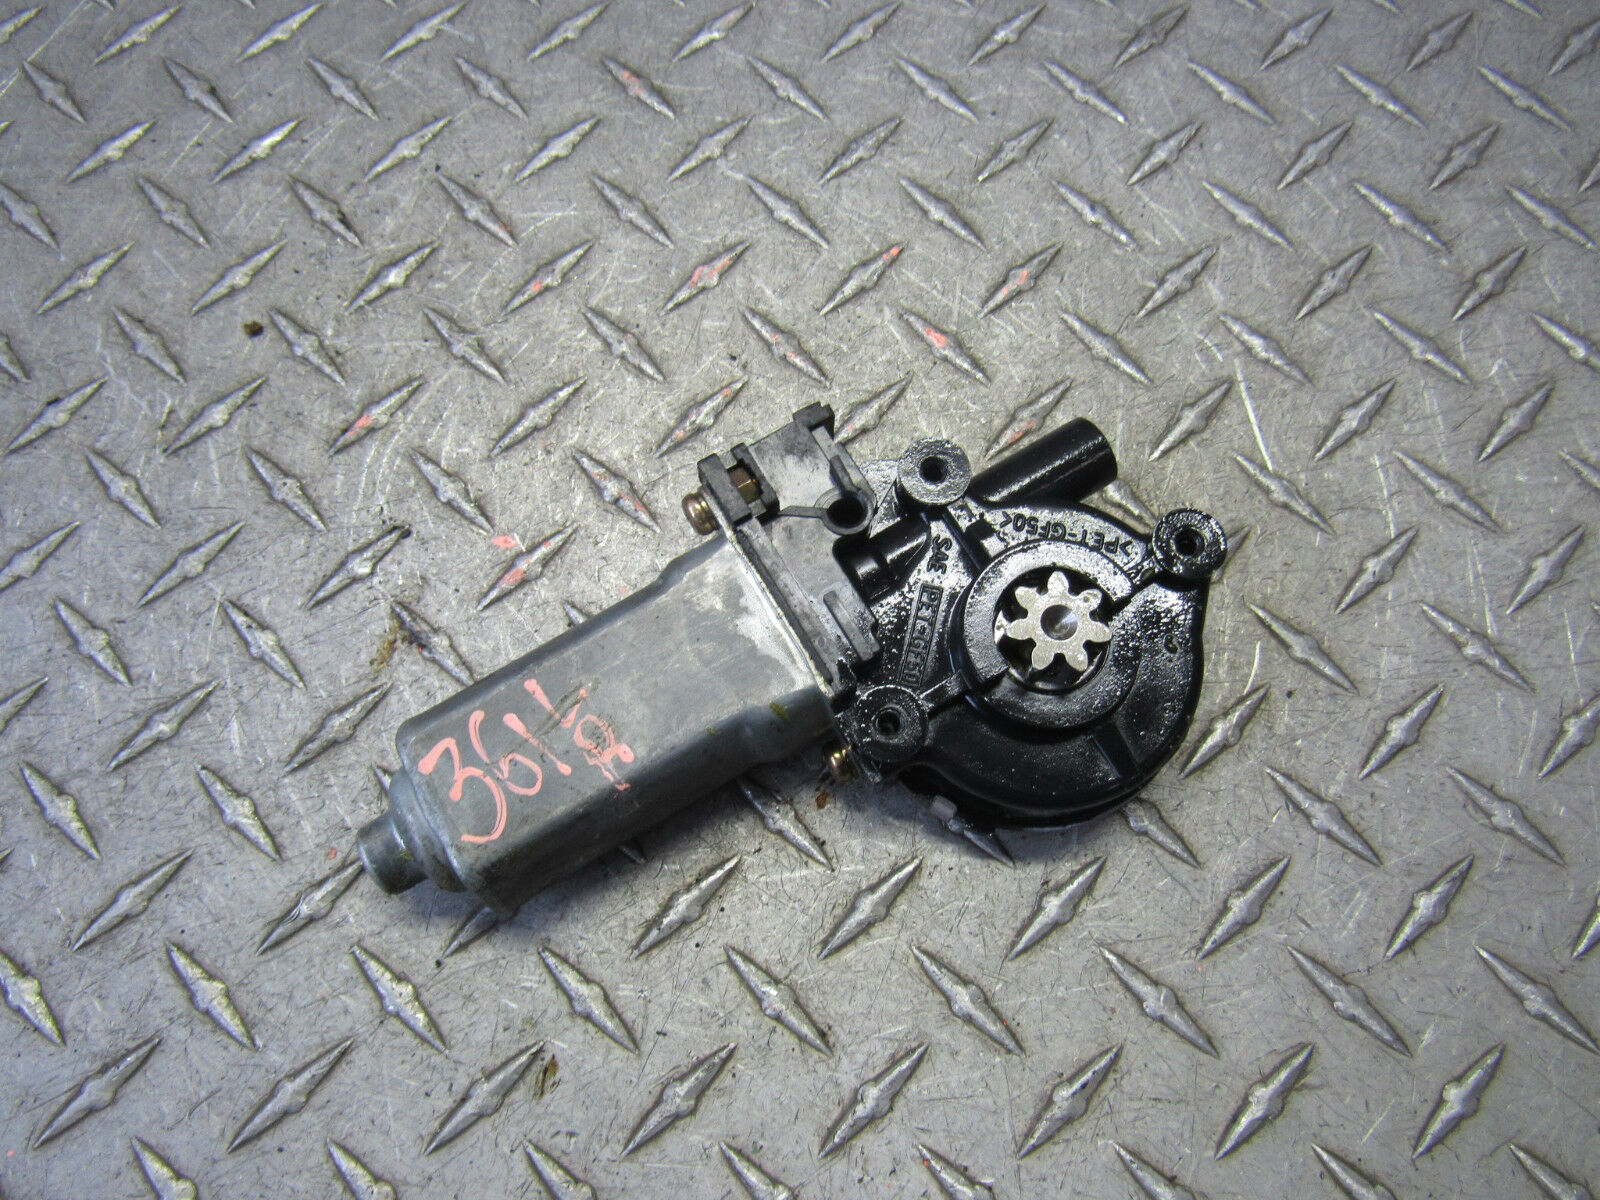 Used Dodge Intrepid Auto Parts And Components For Sale Power 96 Fuse Box 2002 Left Driver Rear Window Motor 35l 6cyl